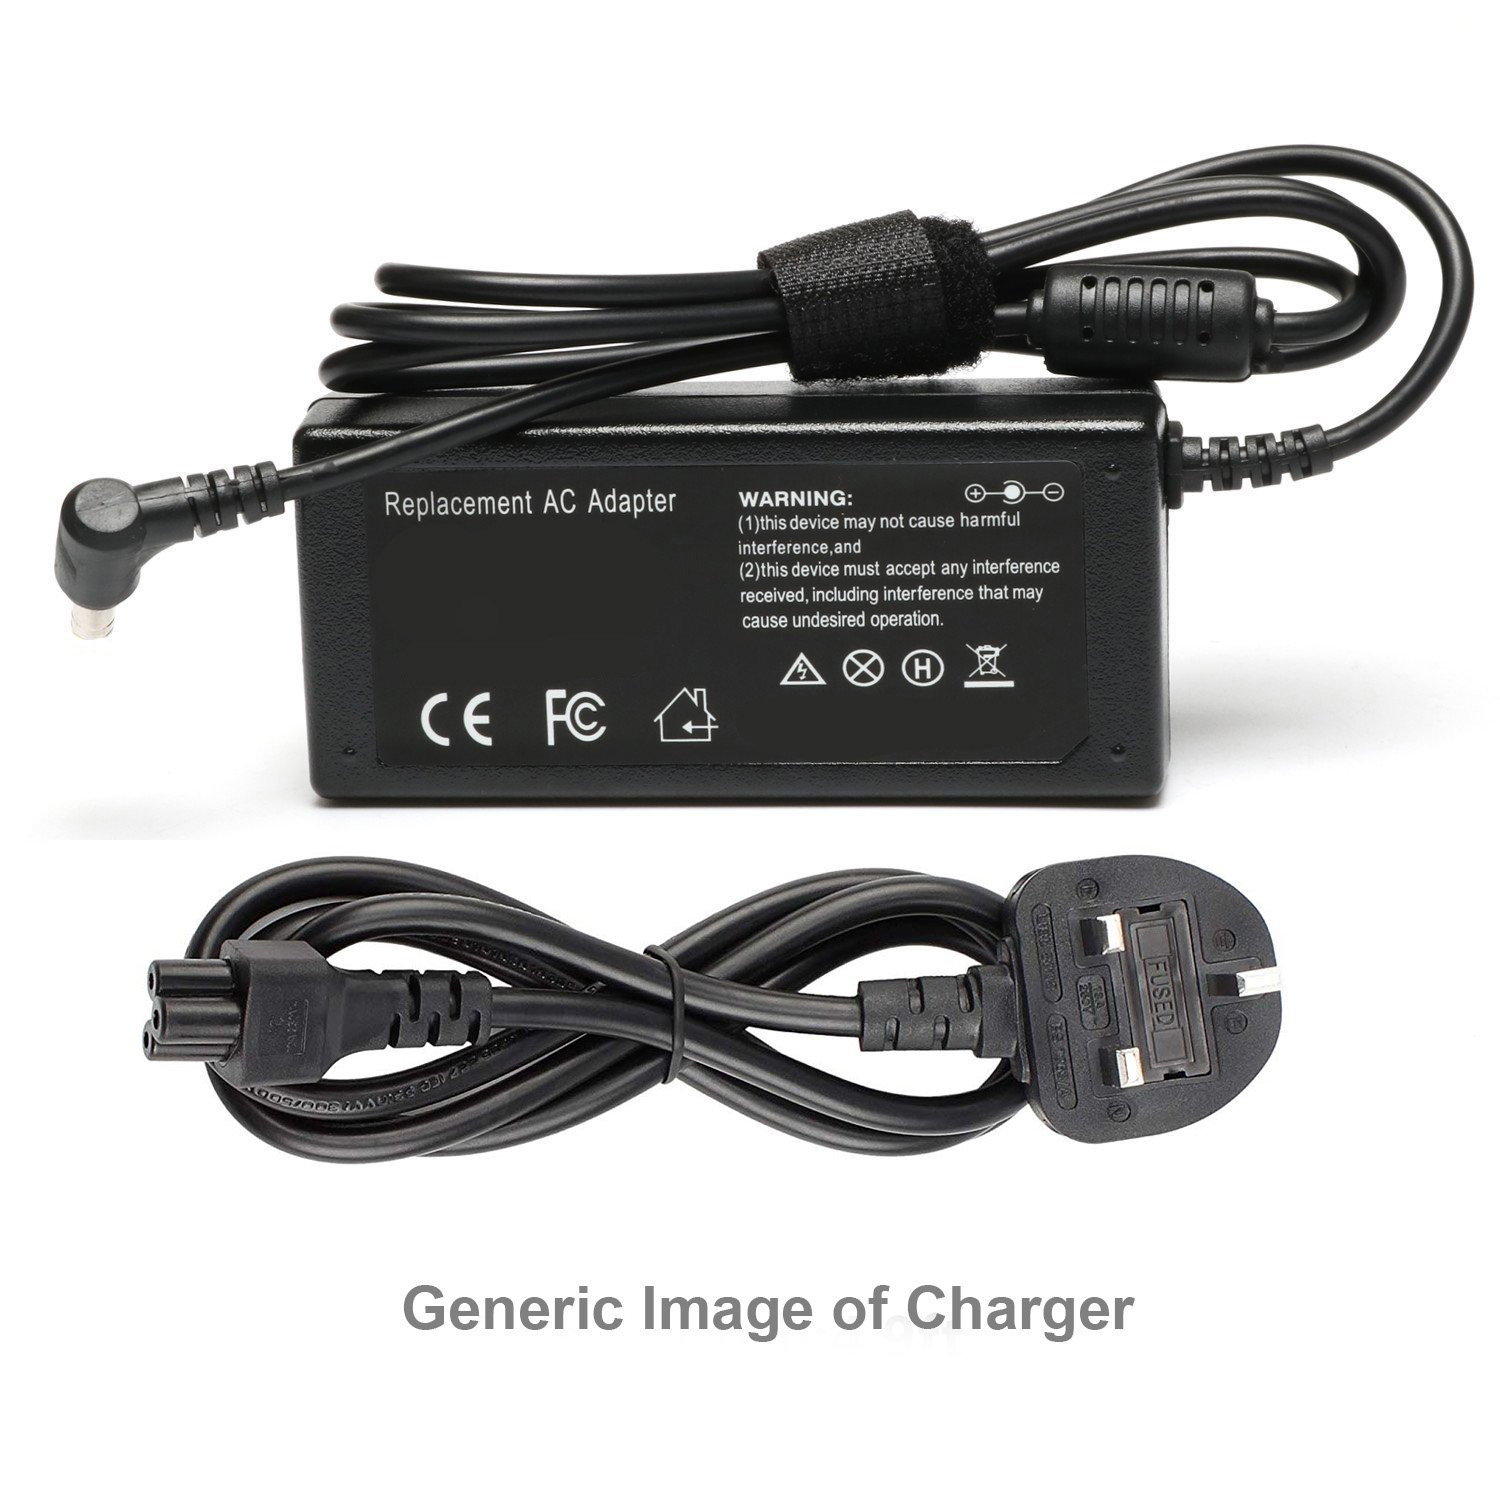 Acer Aspire 2021WLMI Laptop Car Charger